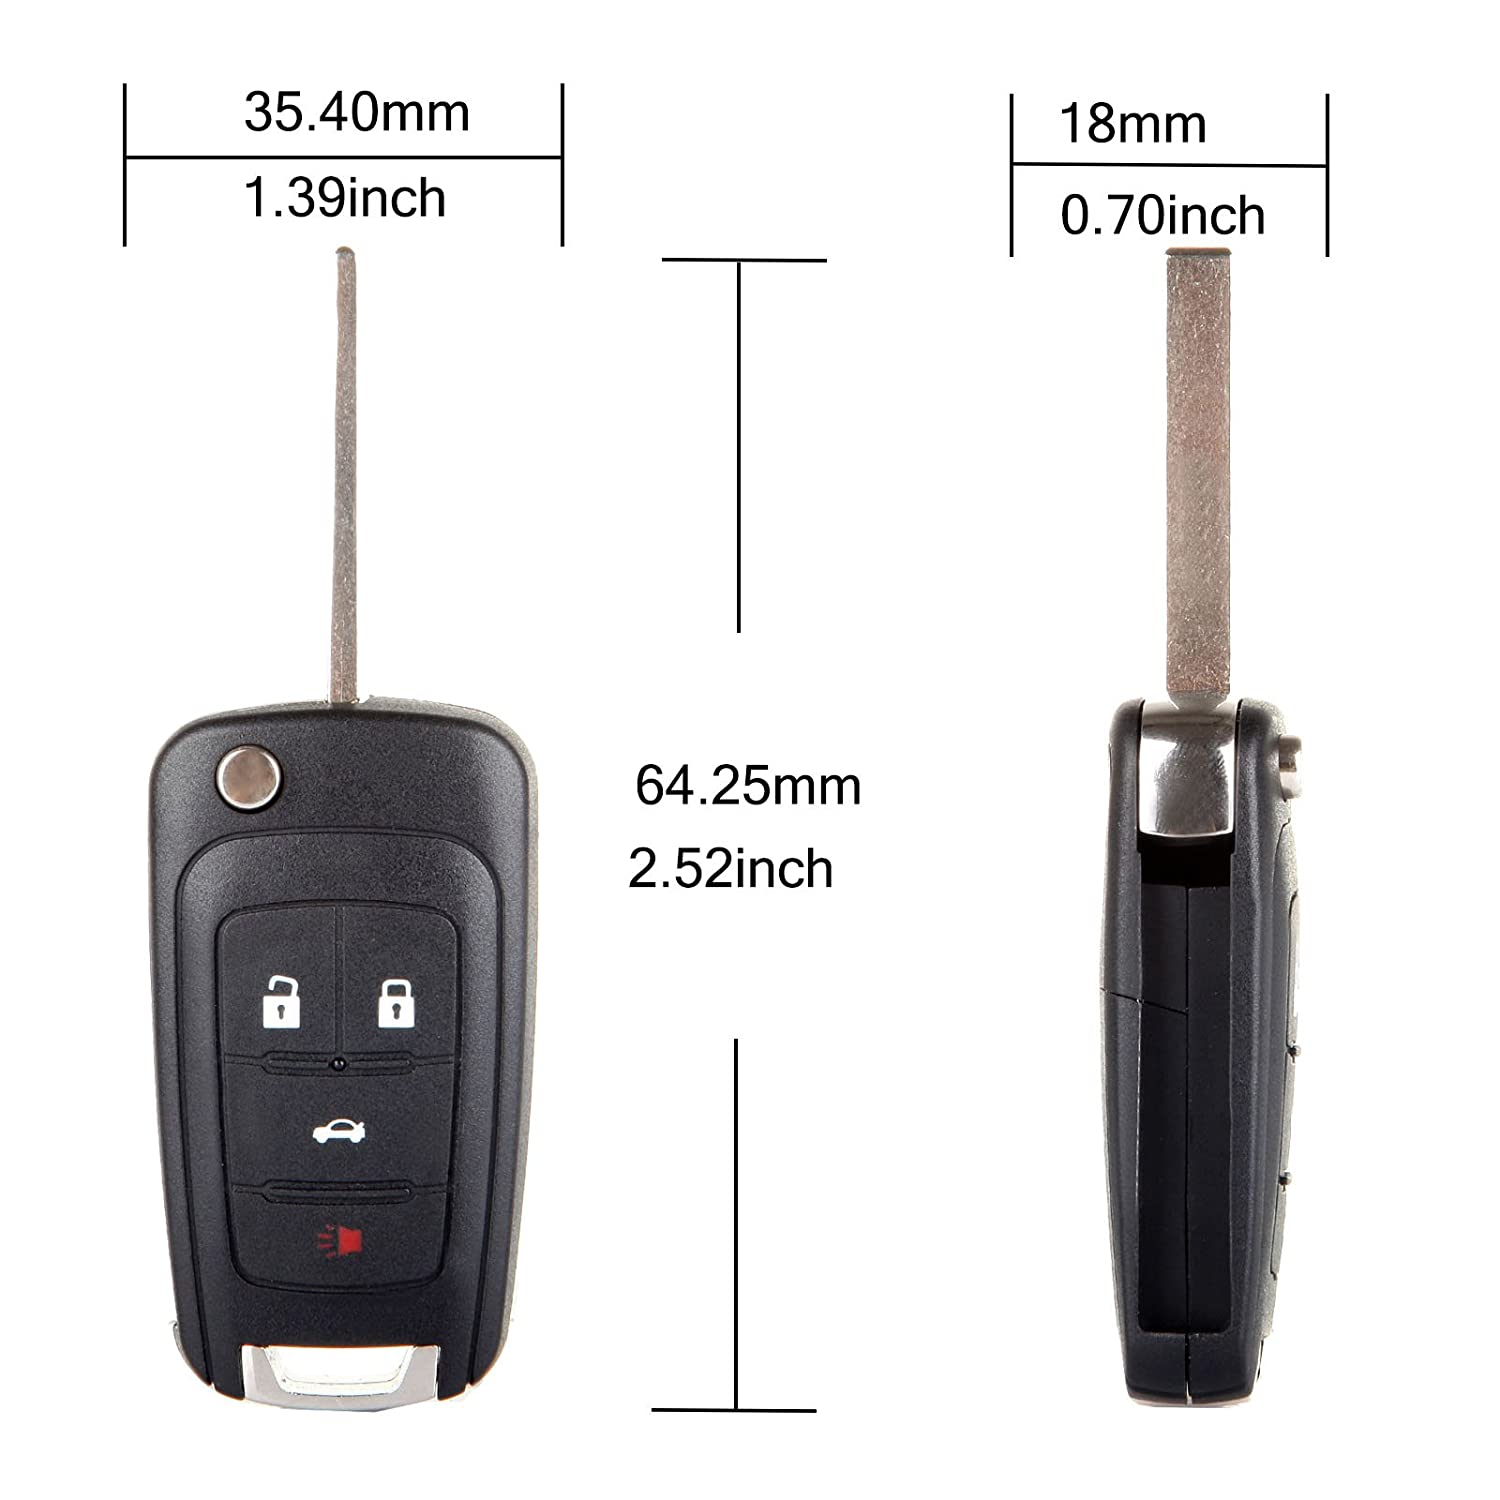 ECCPP Replacement fits for Uncut Keyless Entry Remote Key Fob 2010-2016 Chevrolet Camaro//Chevrolet Cruze//Chevrolet Equinox//Chevrolet Malibu OHT01060512 Pack of 2